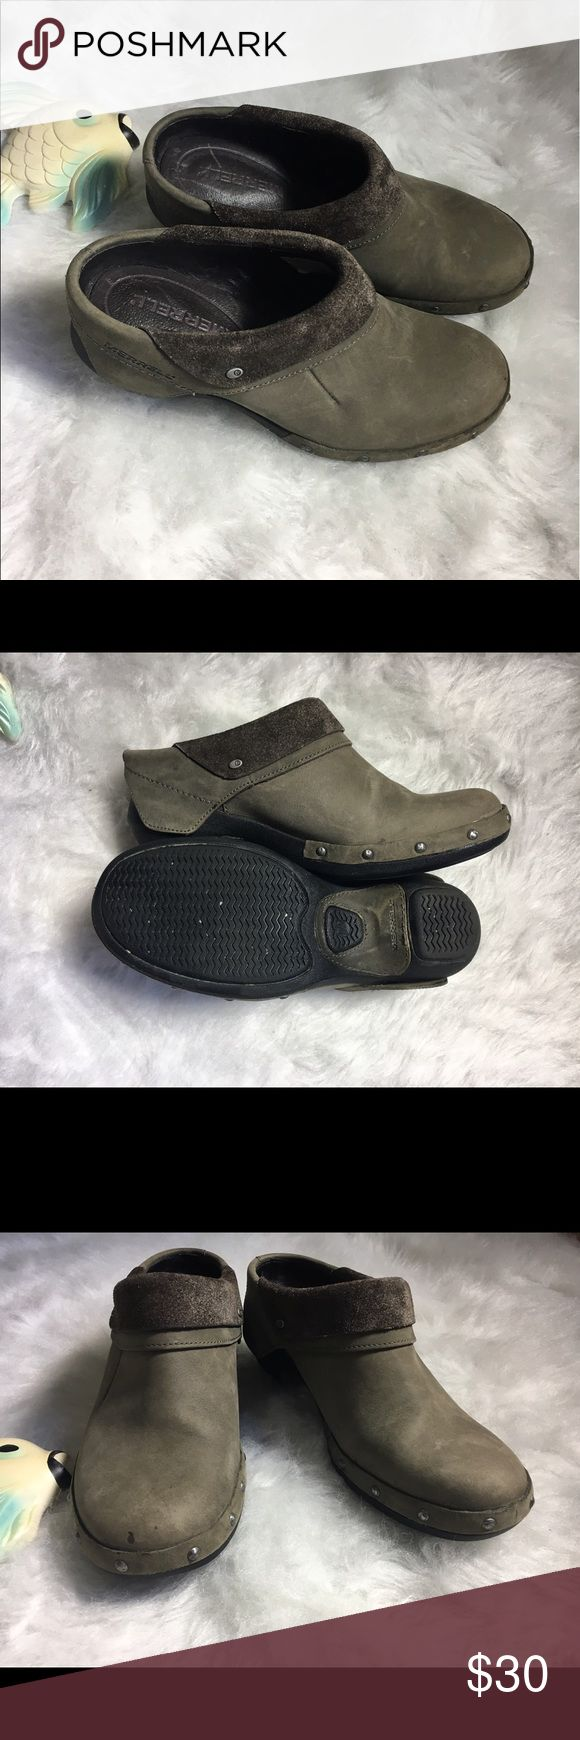 Merrell Drizzle Mule Clog Luxewrap Size 6 Great condition Merrell mule clogs. Luce wrap style. Next to no wear. Brown/grey color. Size 6. Merrell Shoes Mules & Clogs